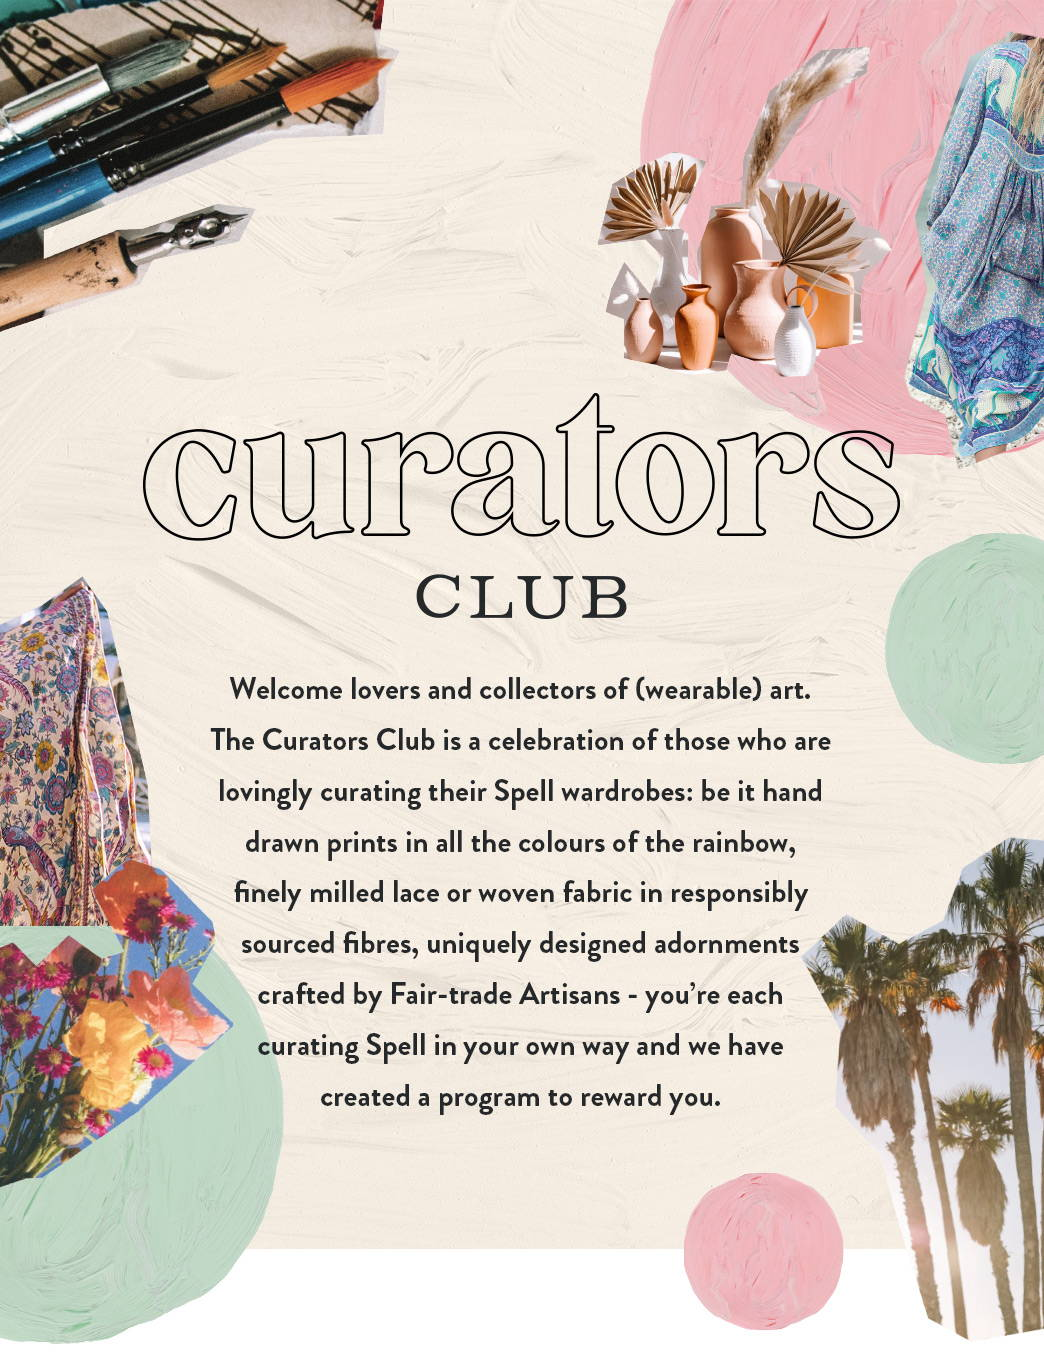 Spell Curators Club, a celebration of those who are lovingly curating their Spell wardrobes we have a created a program specifically to reward you.